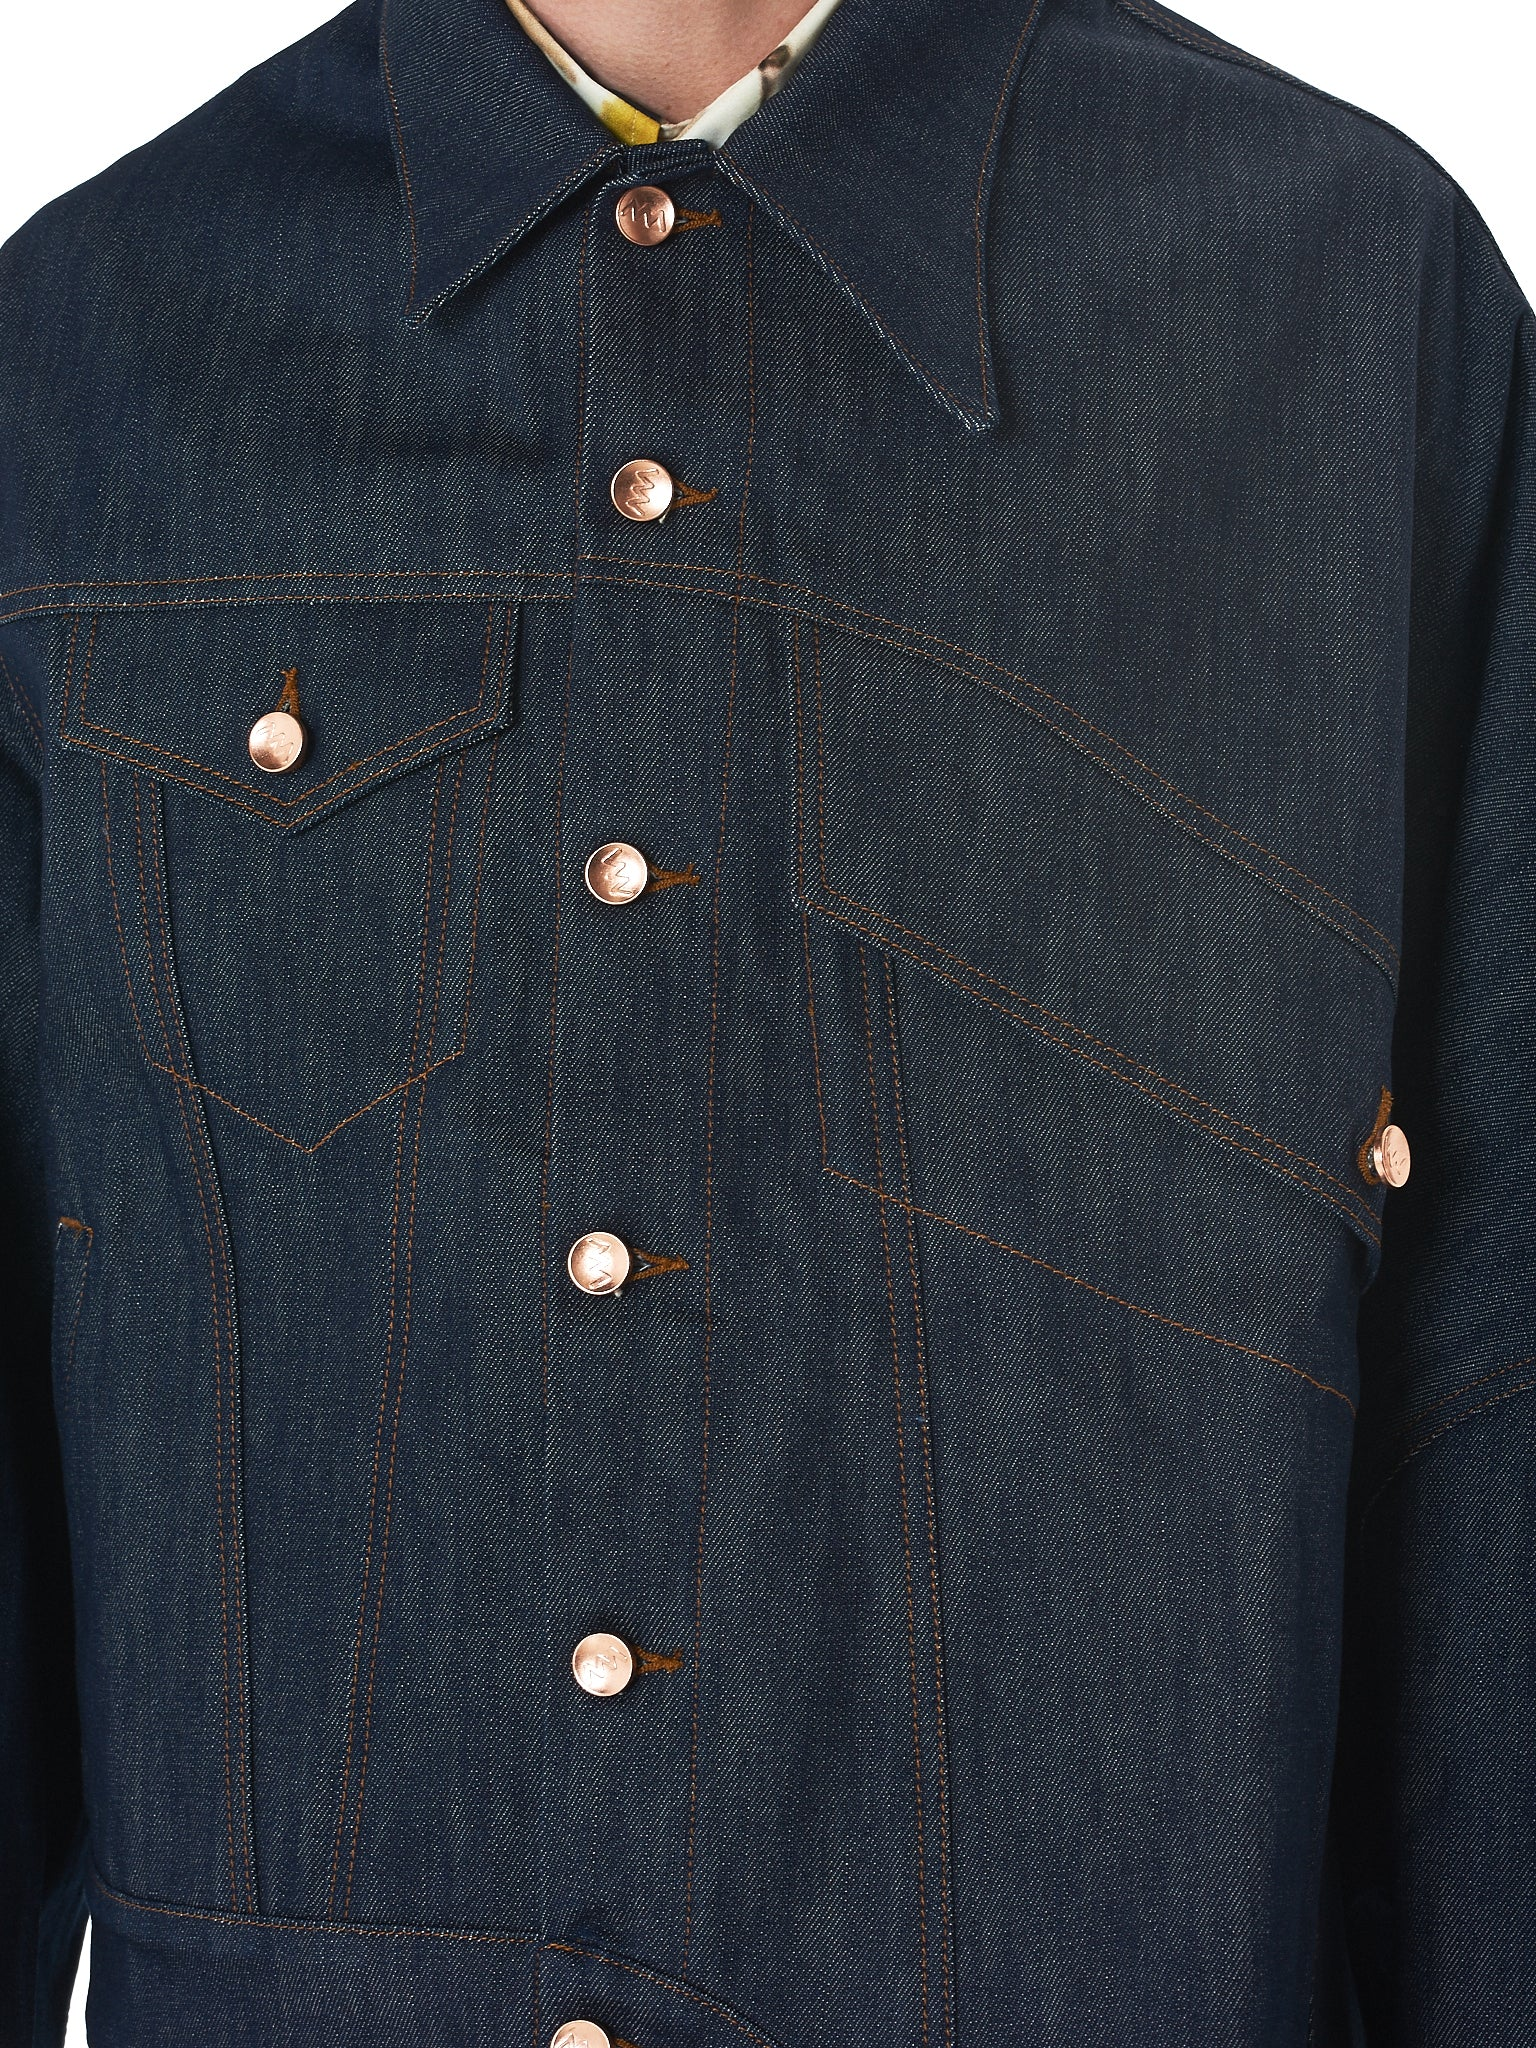 Alex Mullins Denim Jacket - Hlorenzo Detail 3